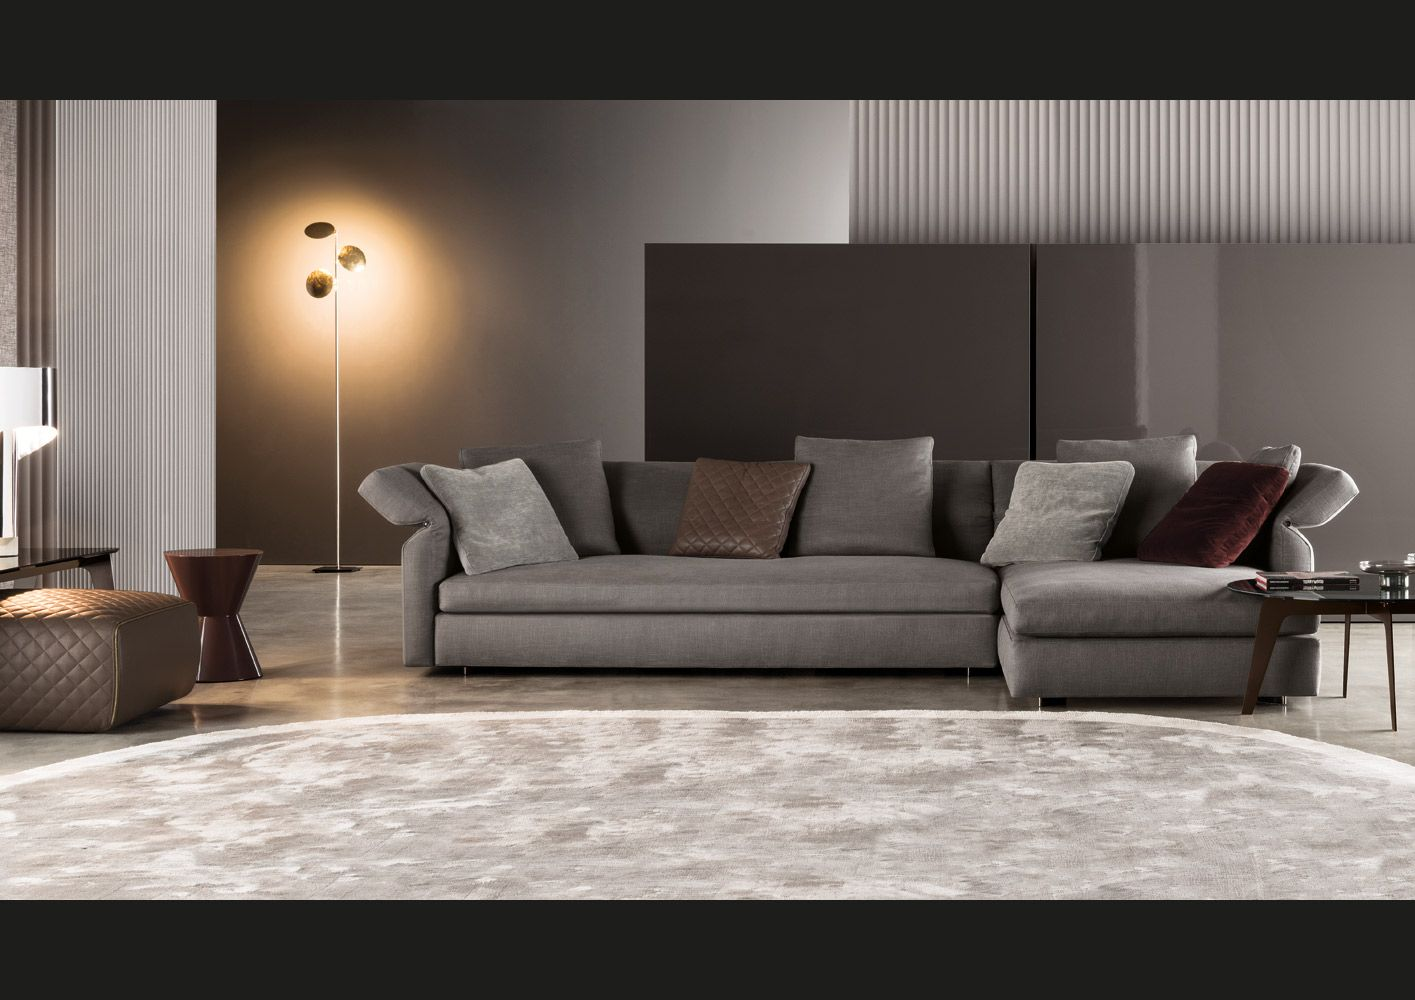 Minotti Ipad  Sofas  En  Collar  Minotti  Pinterest  Modern Classy Furniture Design Living Room Review